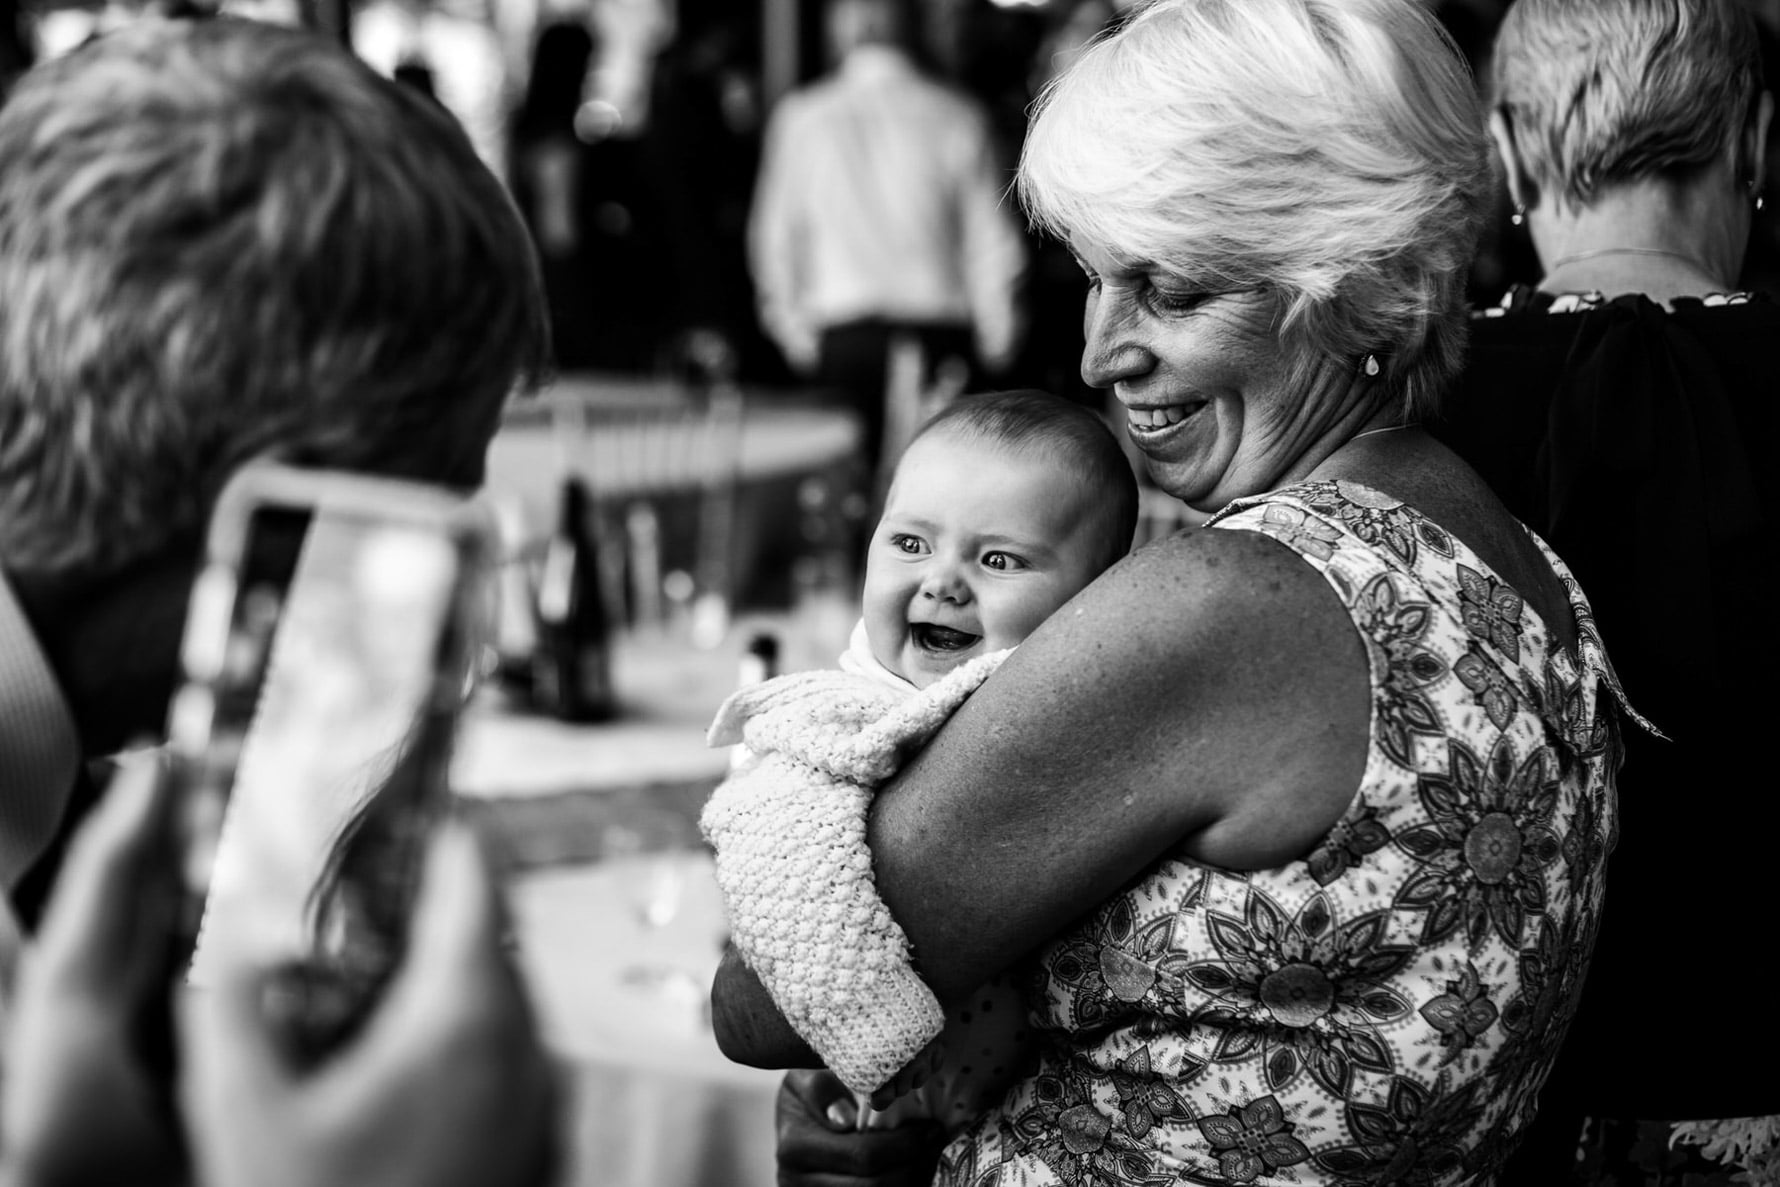 Lady holding a baby who is laughing